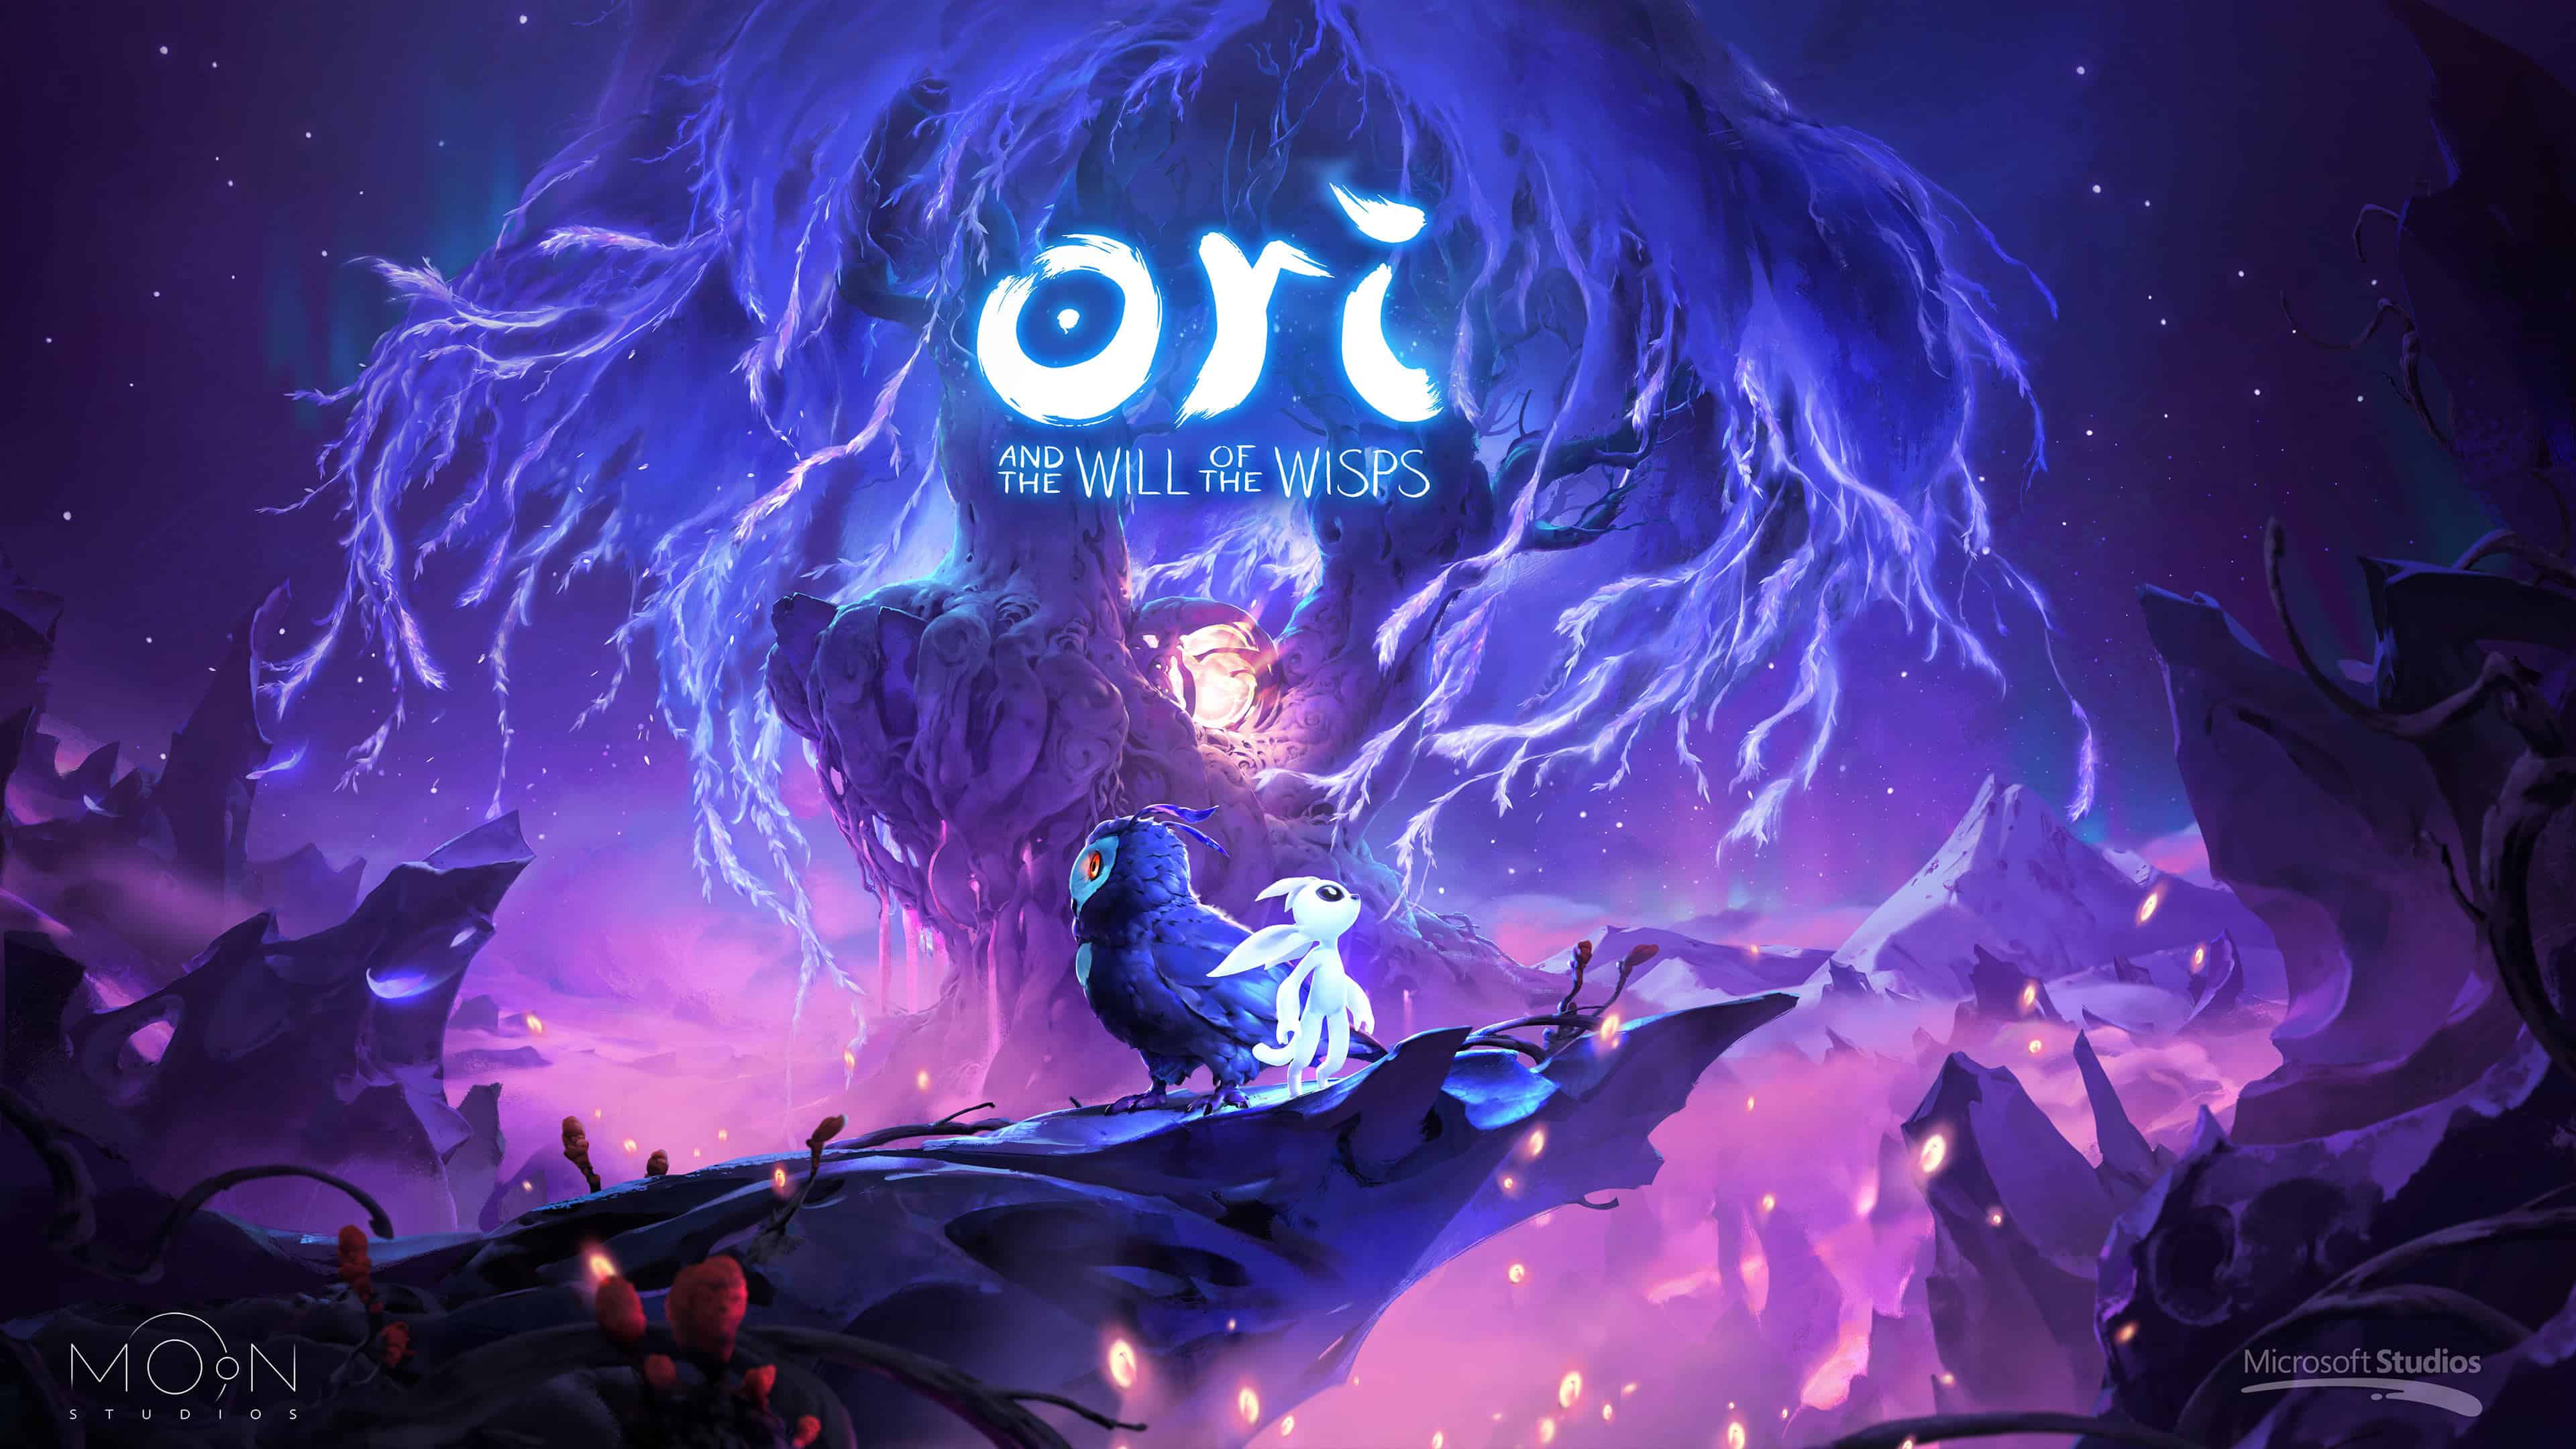 Ori And The Will Of The Wisps UHD 4K Wallpaper Pixelz 3840x2160